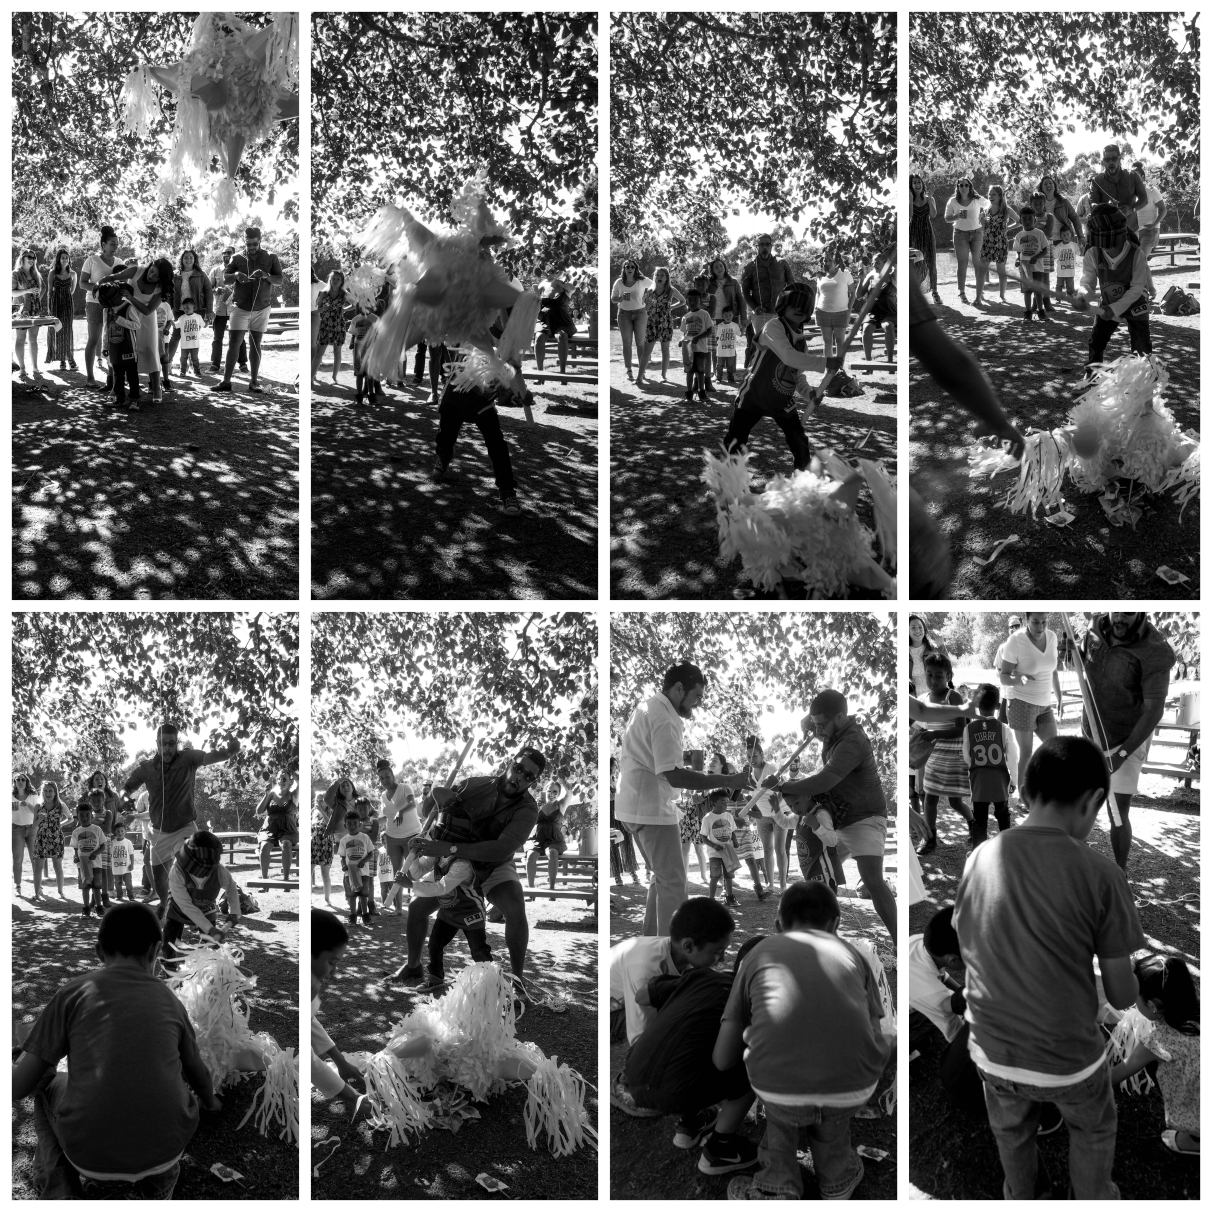 A Series of Decisive Moments (Piñata Sequence), Oakland CA, Summer 2016.